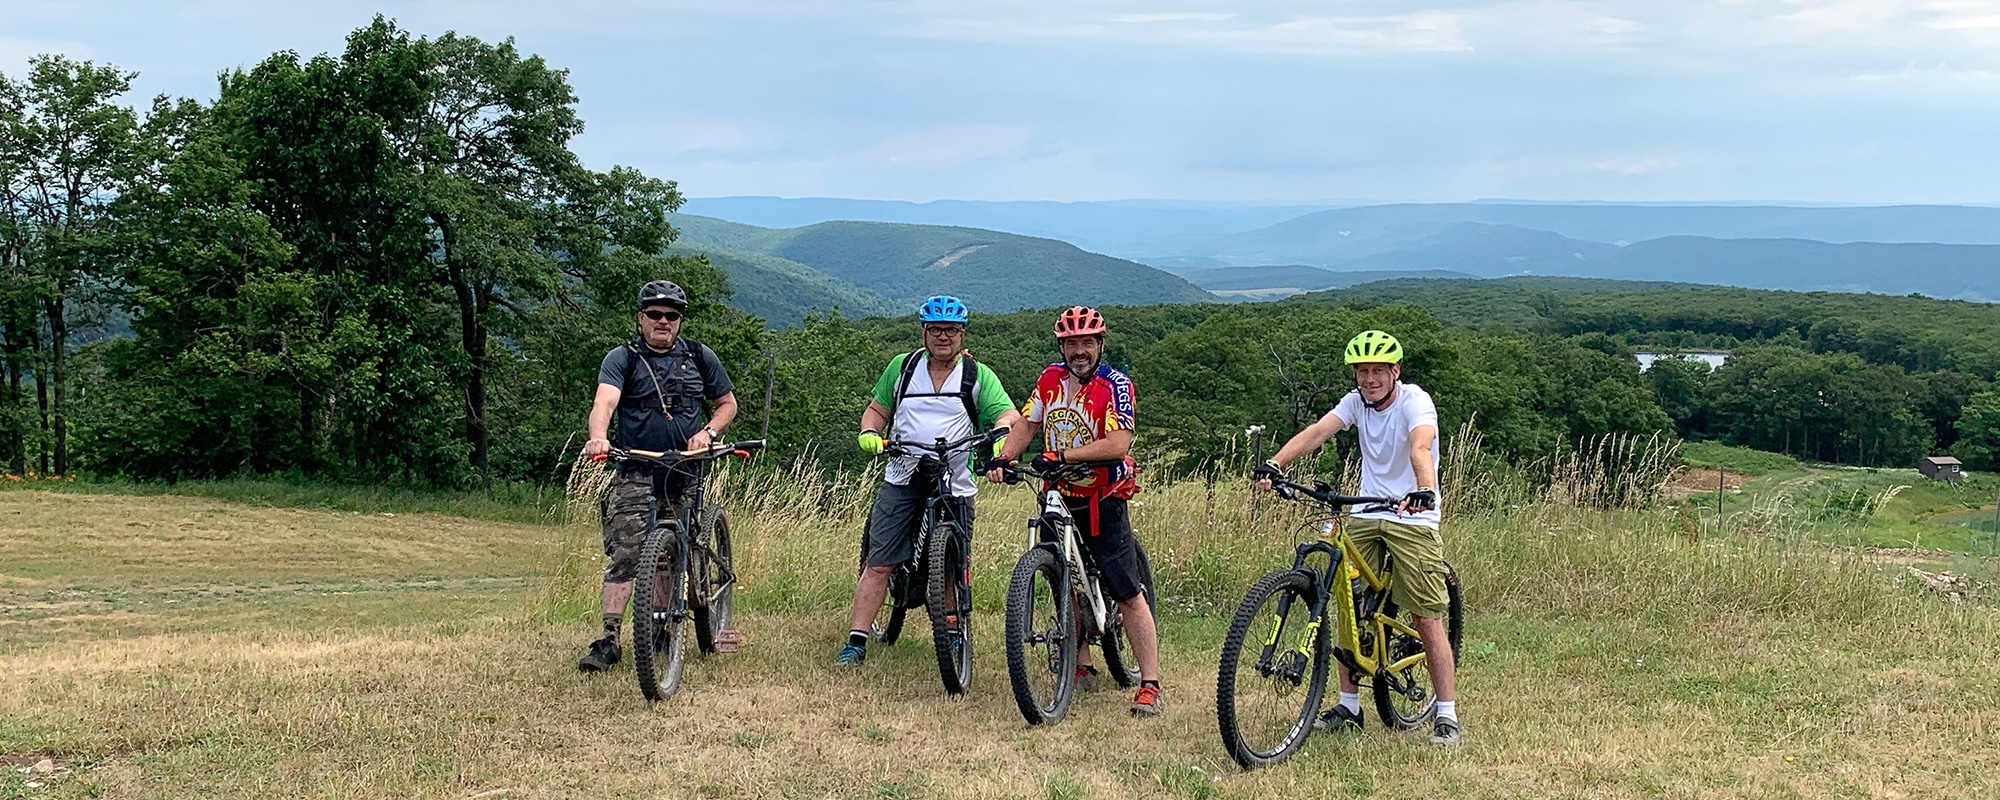 Mountain bikers stand on a grassy field atop a mountain